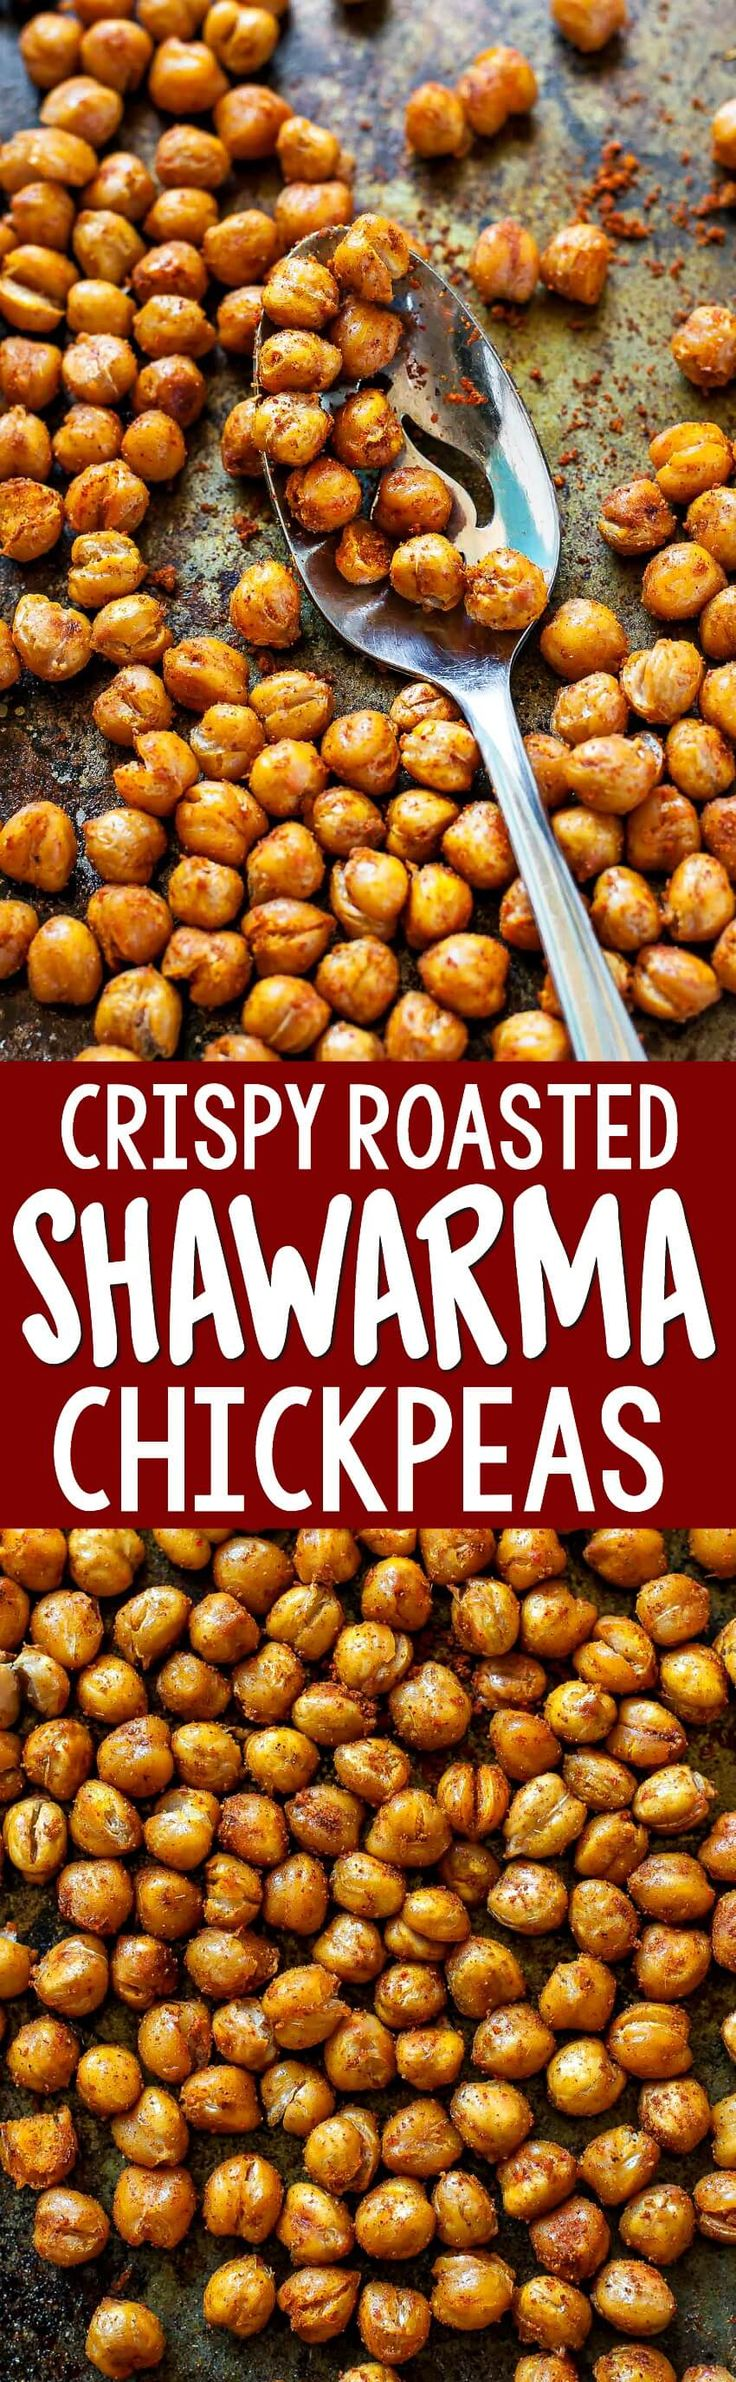 Transform an unsuspecting can of chickpeas into a crispity crunchity flavor bomb that's perfect for topping and for snacking! These crispy roasted shawarma chickpeas are addictively delicious!